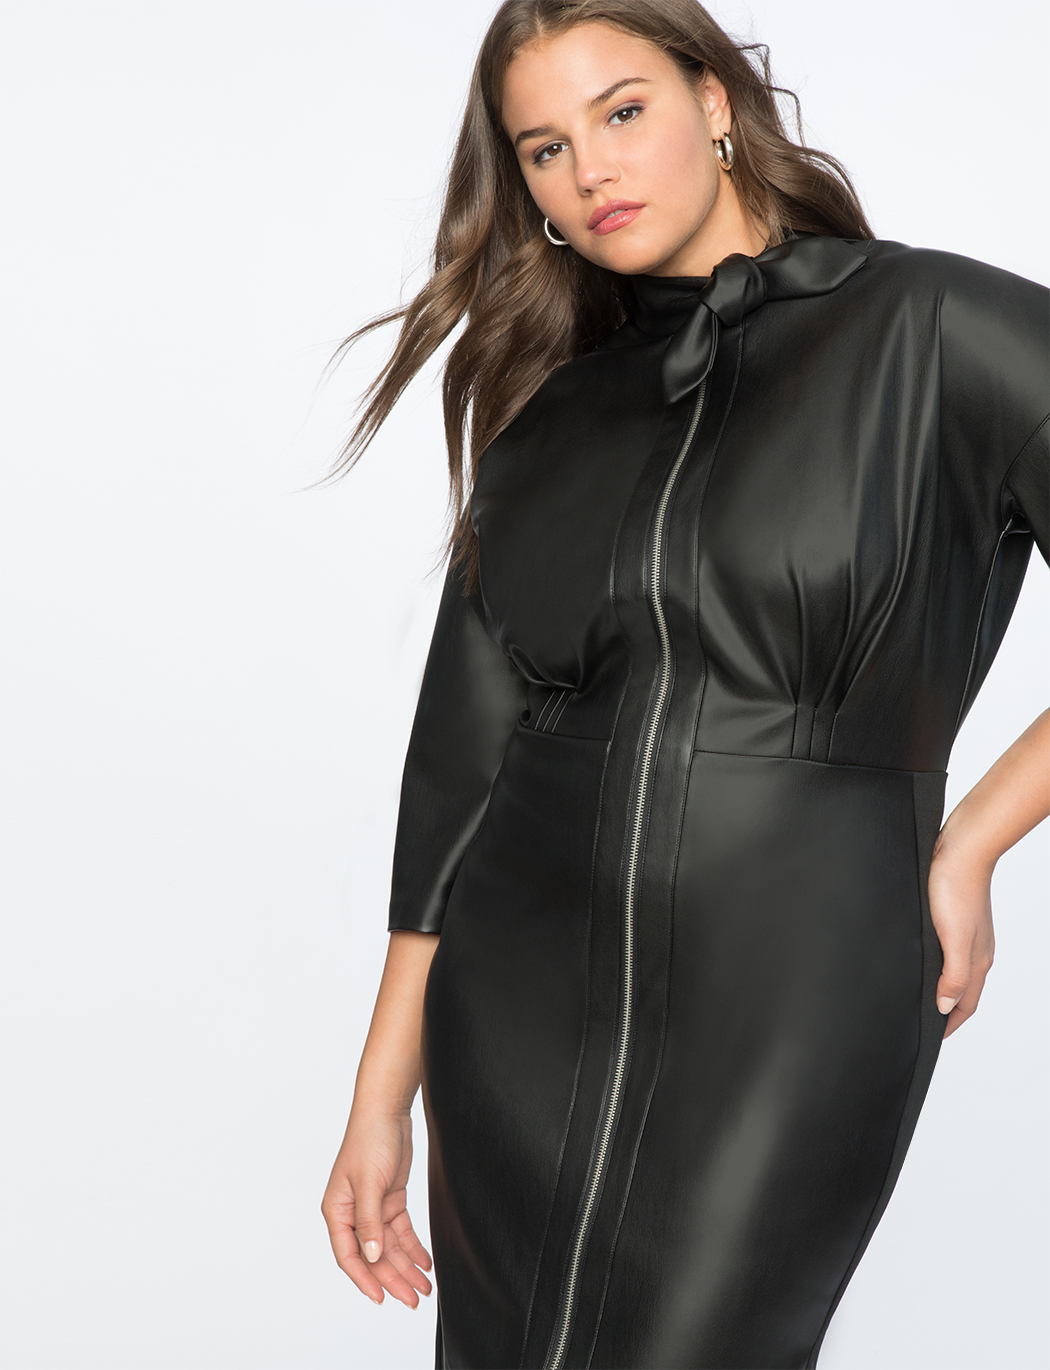 Tie Neck Faux Leather Dress | Women\'s Plus Size Dresses | ELOQUII